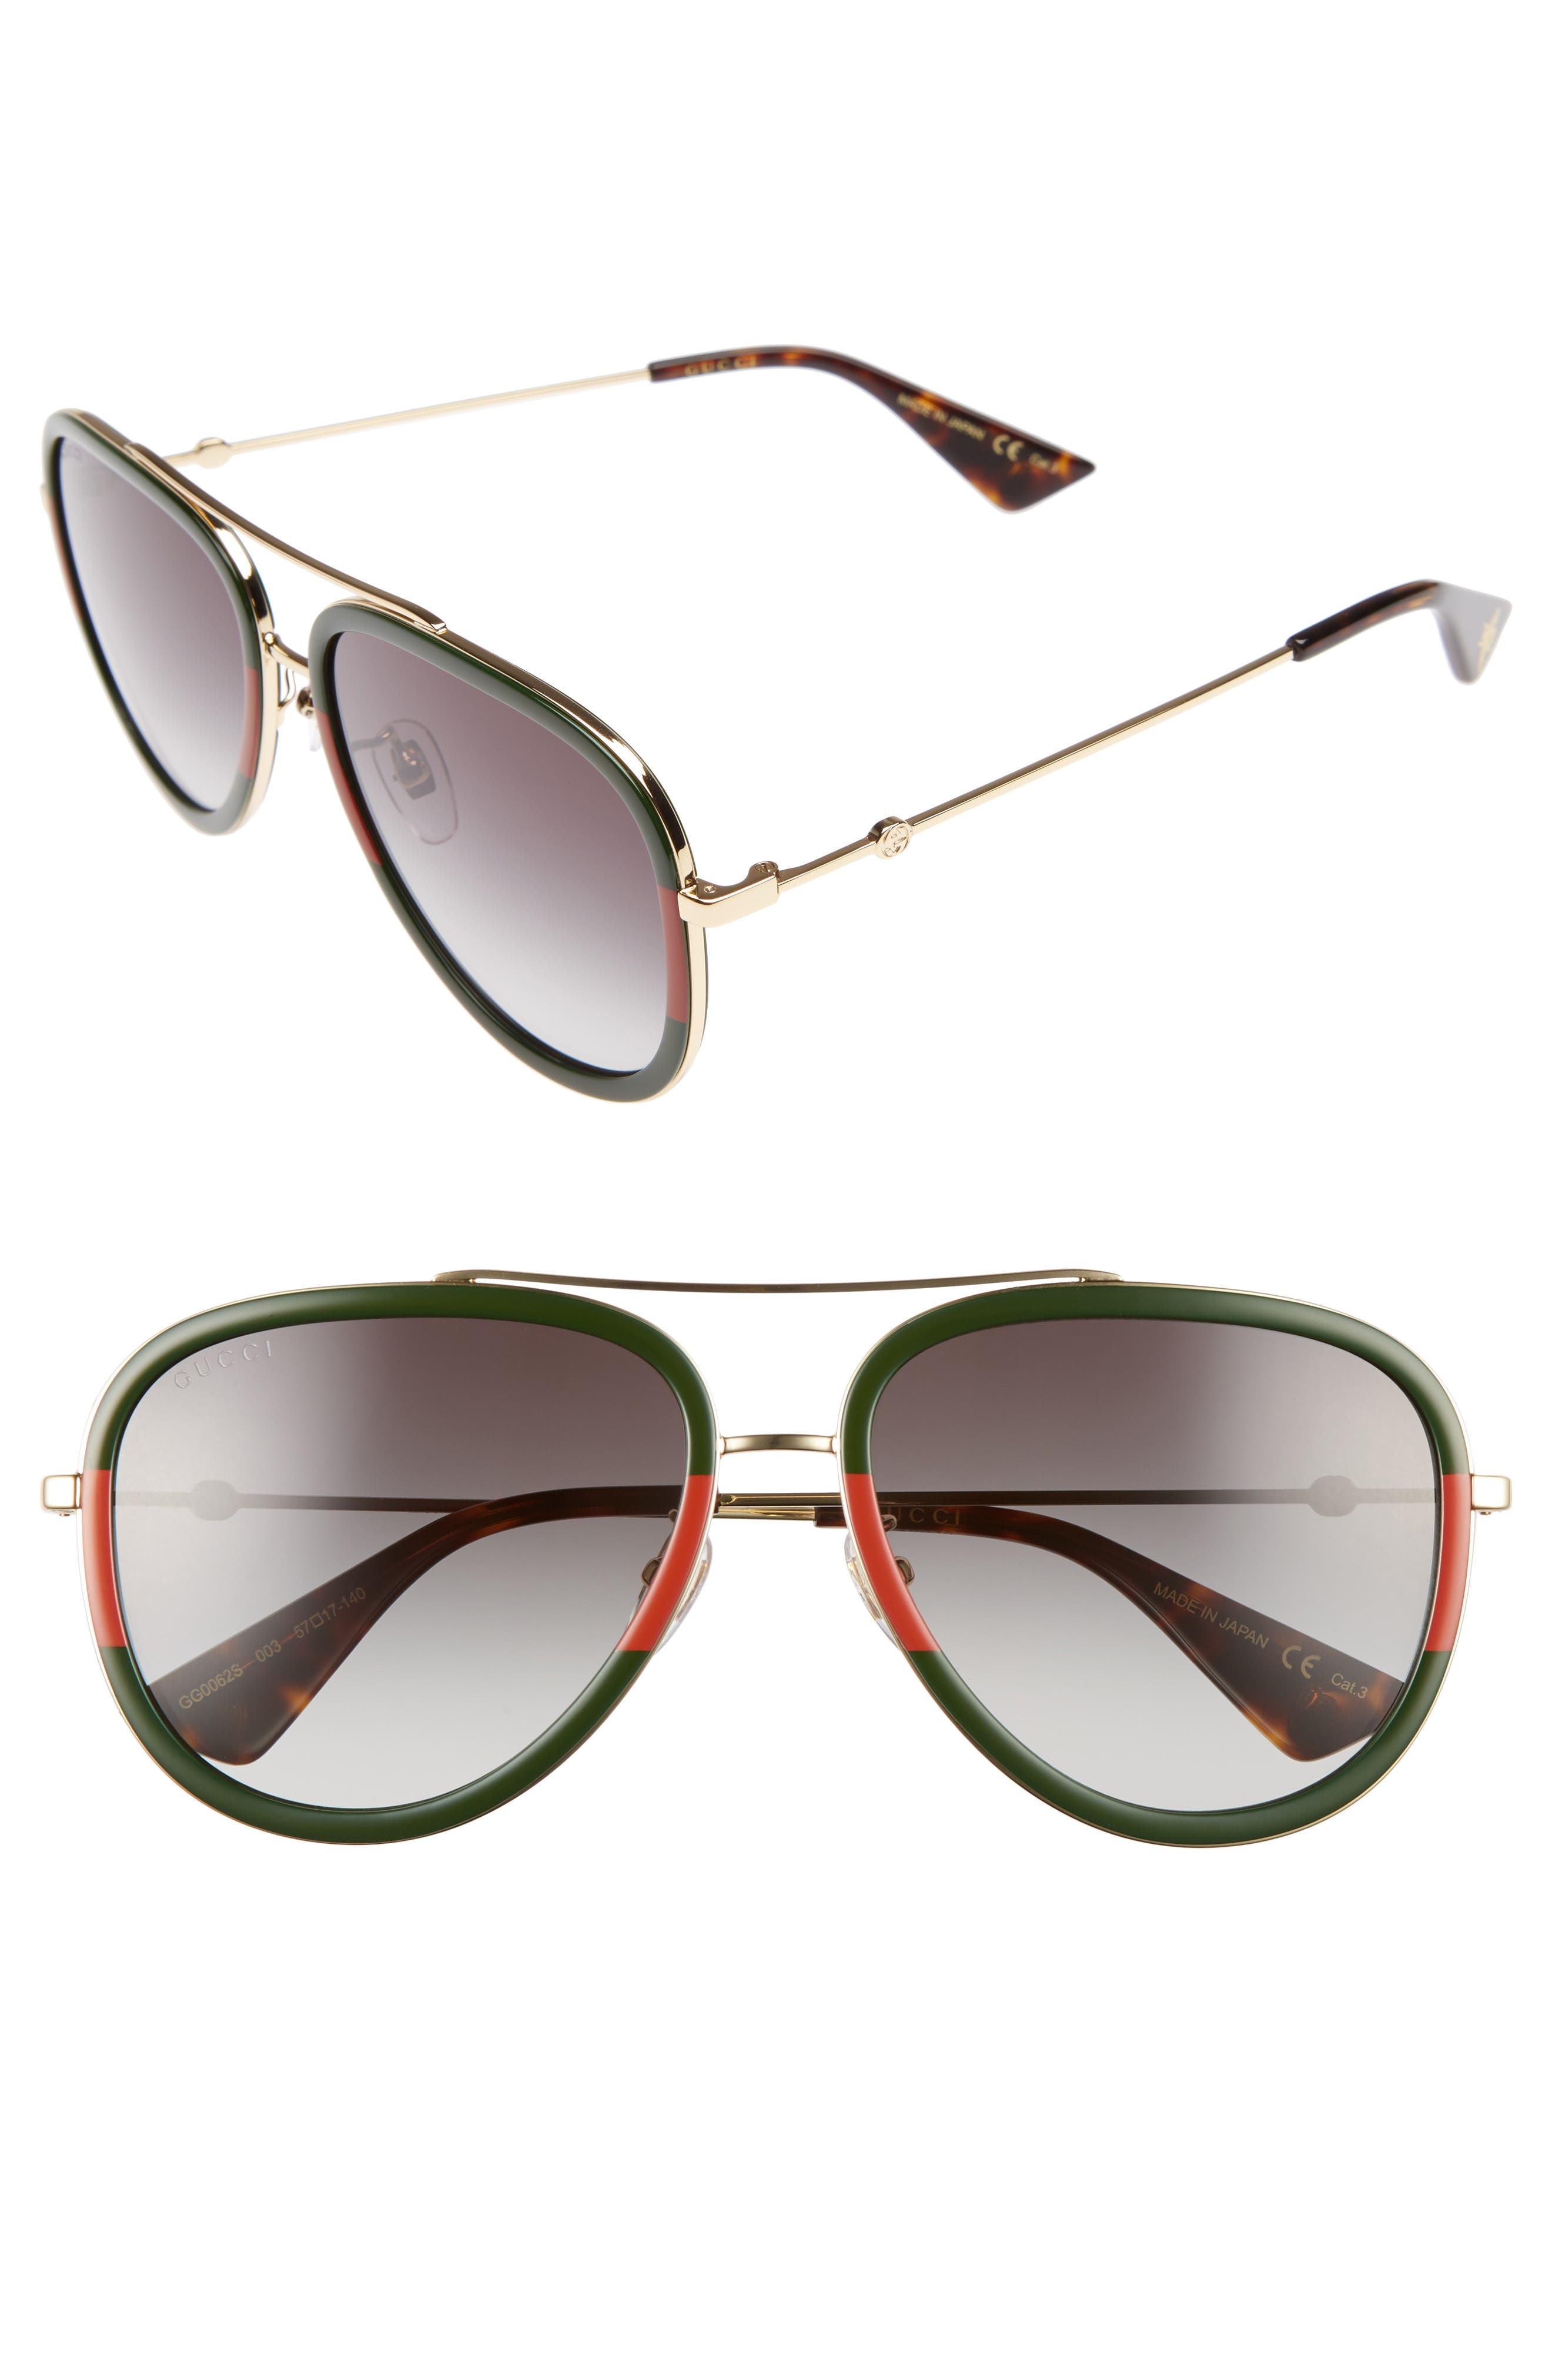 Gucci 57Mm Aviator Sunglasses -